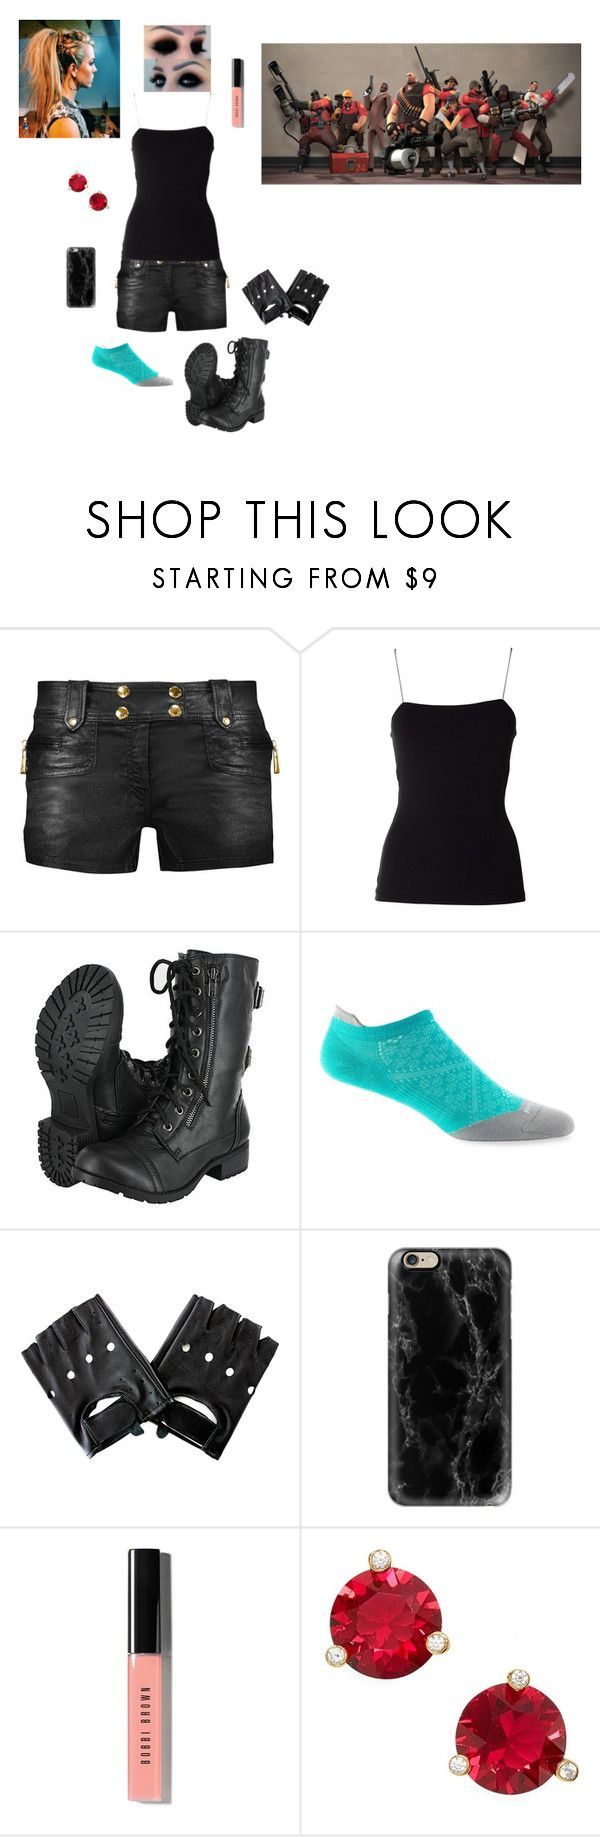 """""""Day 1 with Red Team (Team Fortress 2)"""" by fifthelement ❤ liked on Polyvore featuring Just Cavalli, T By Alexander Wang, Smartwool, Casetify, Bobbi Brown Cosmetics and Kate Spade"""